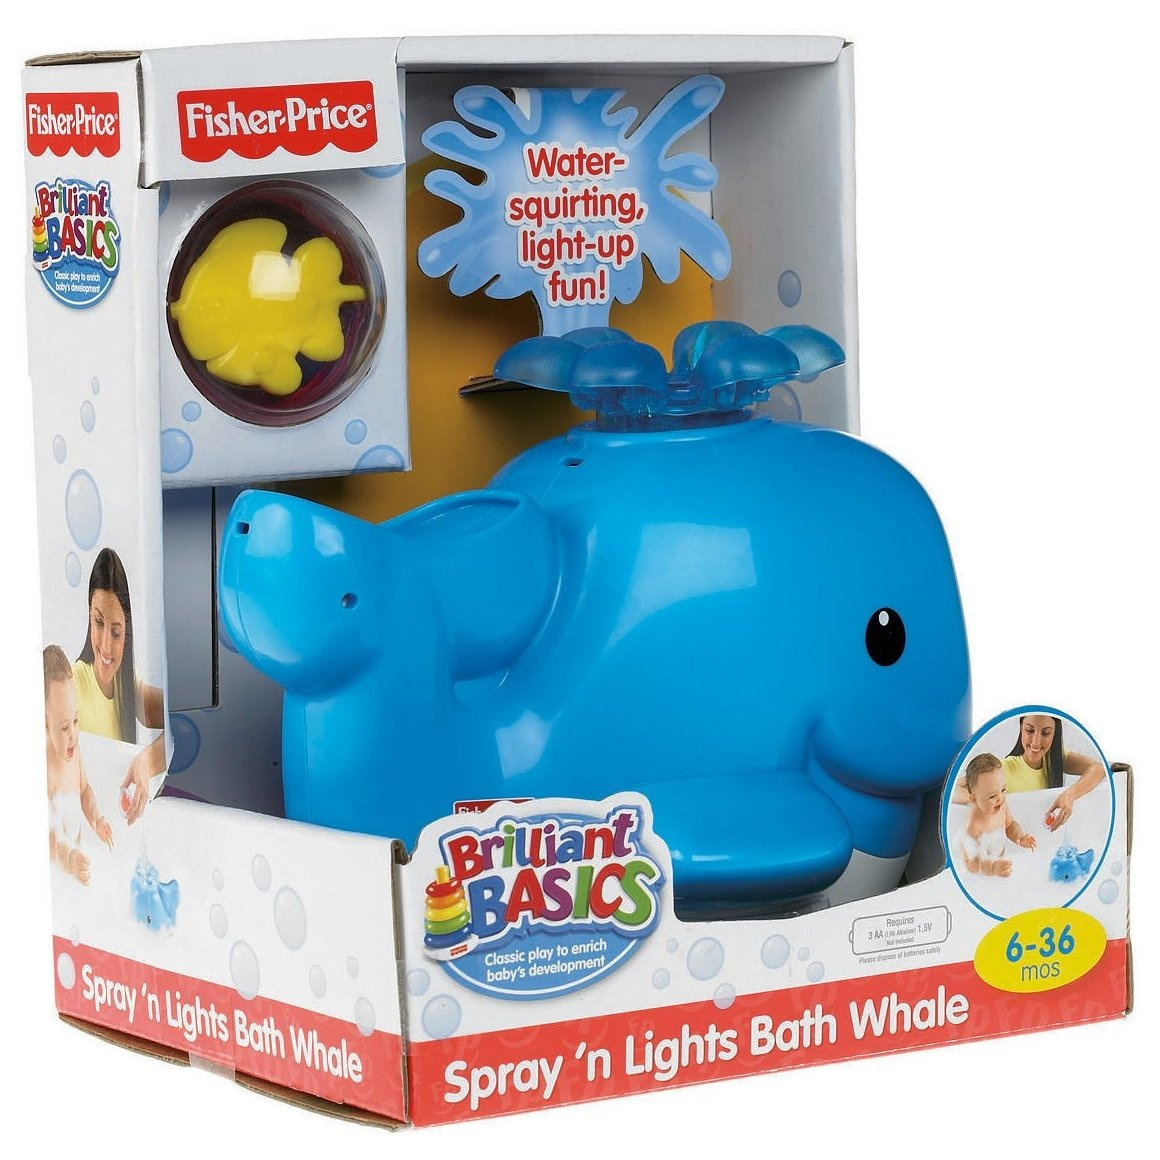 Fisher Price Whale Bath Baby Baby: Buy Online from Fishpond.co.nz